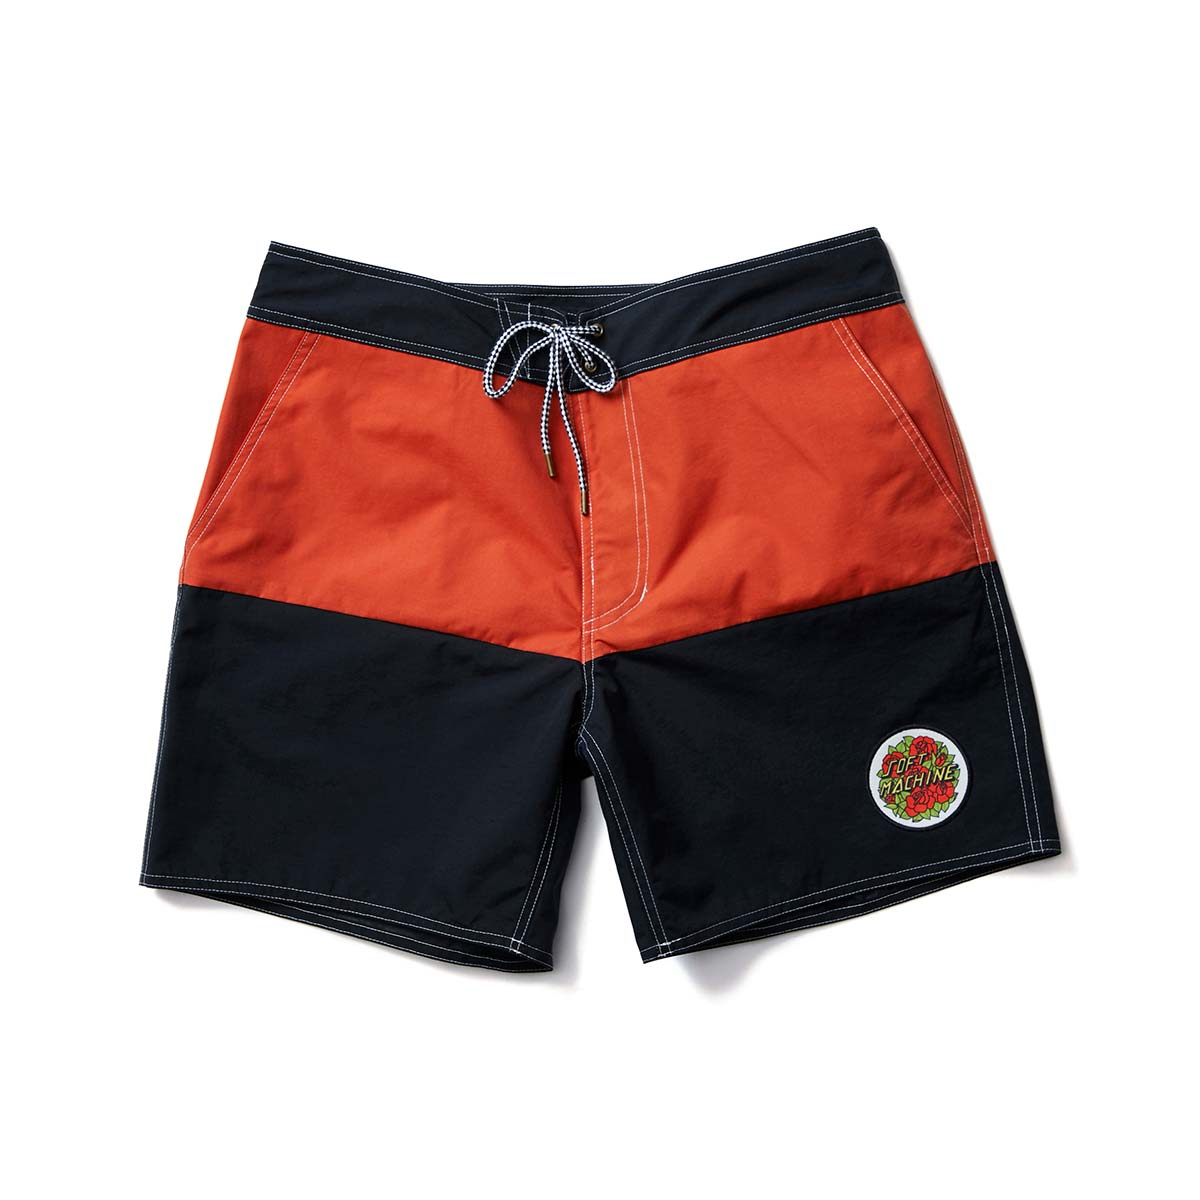 COAST BORAD SHORTS